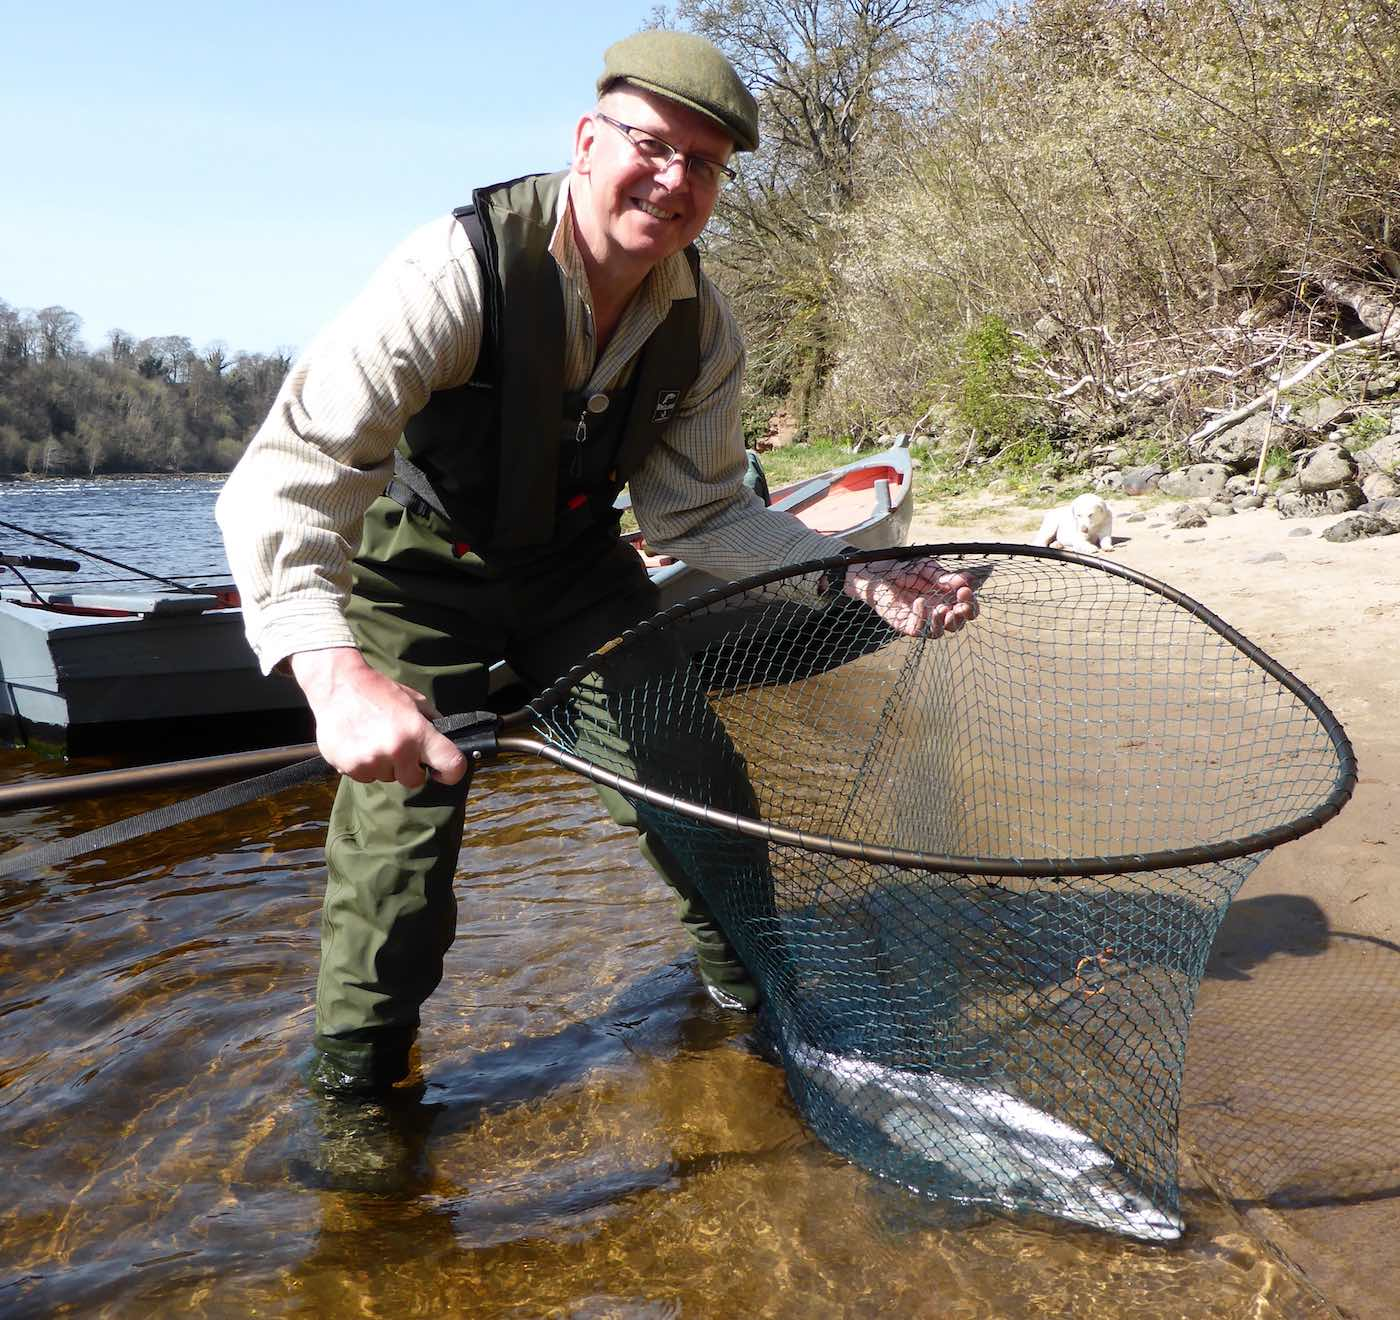 Fishing With Colleague Photograph Style images/58f46cac-Fish-Handling-Shots-1.jpg